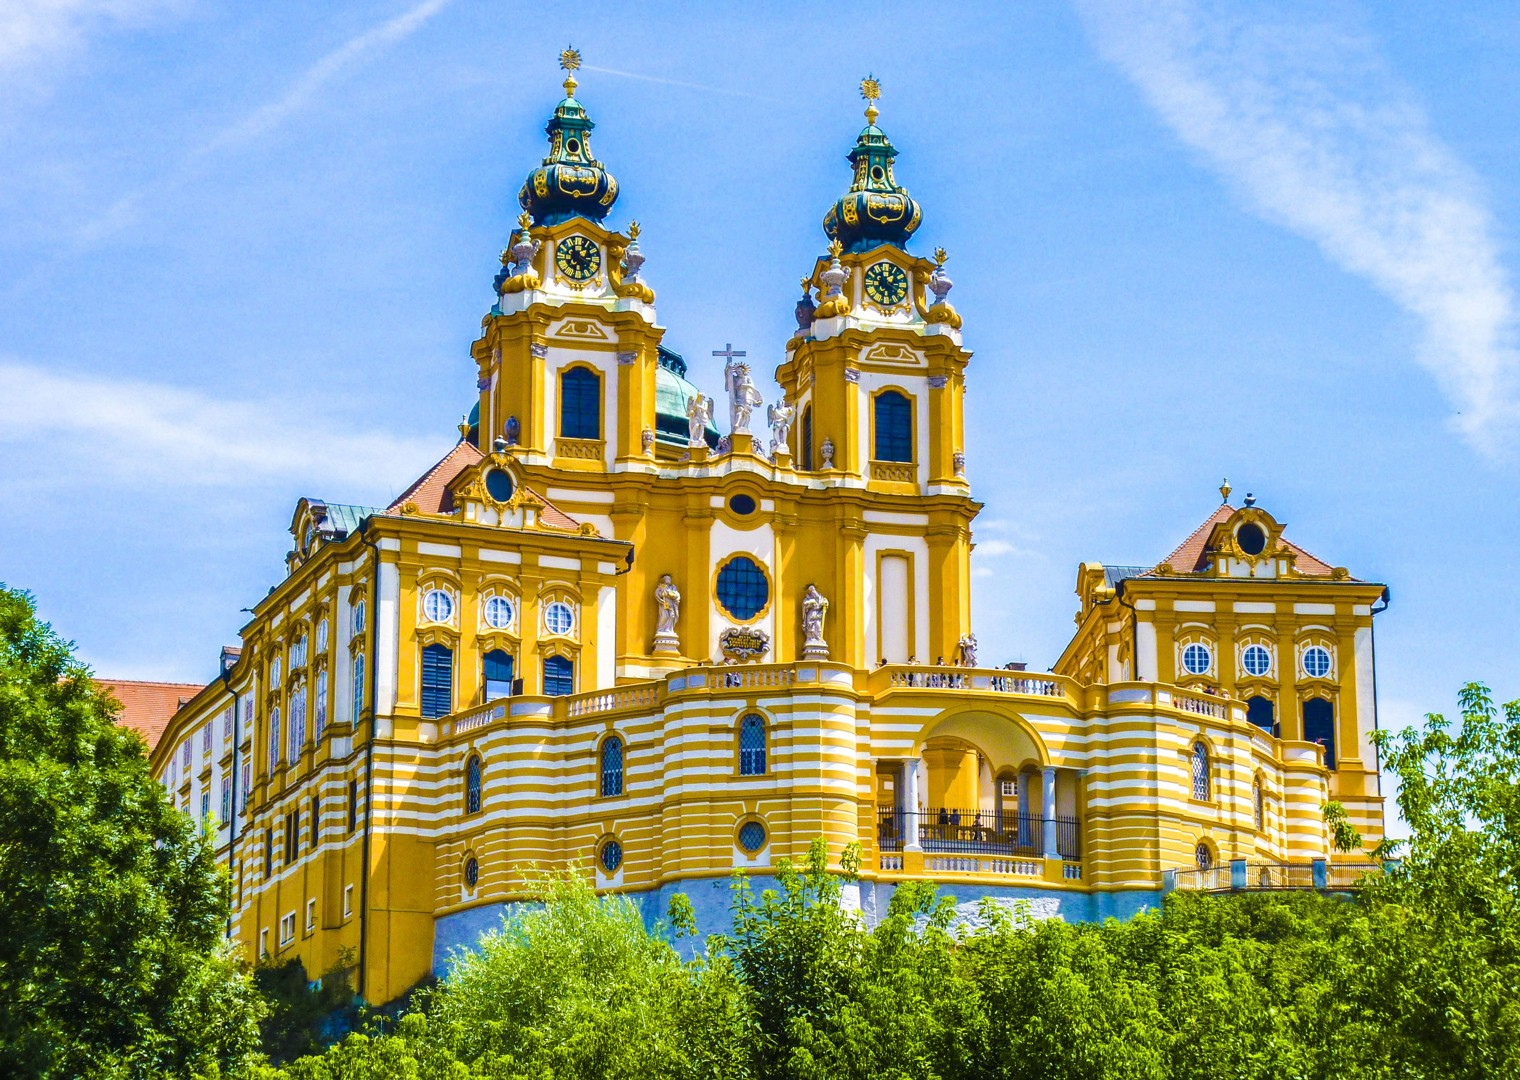 melk-abbey-austria-wachau-valley-10-day-sightseeing-cycling-holdiay.jpg - Germany and Austria - The Danube Cyclepath (10 Days) - Self-Guided Leisure Cycling Holiday - Leisure Cycling